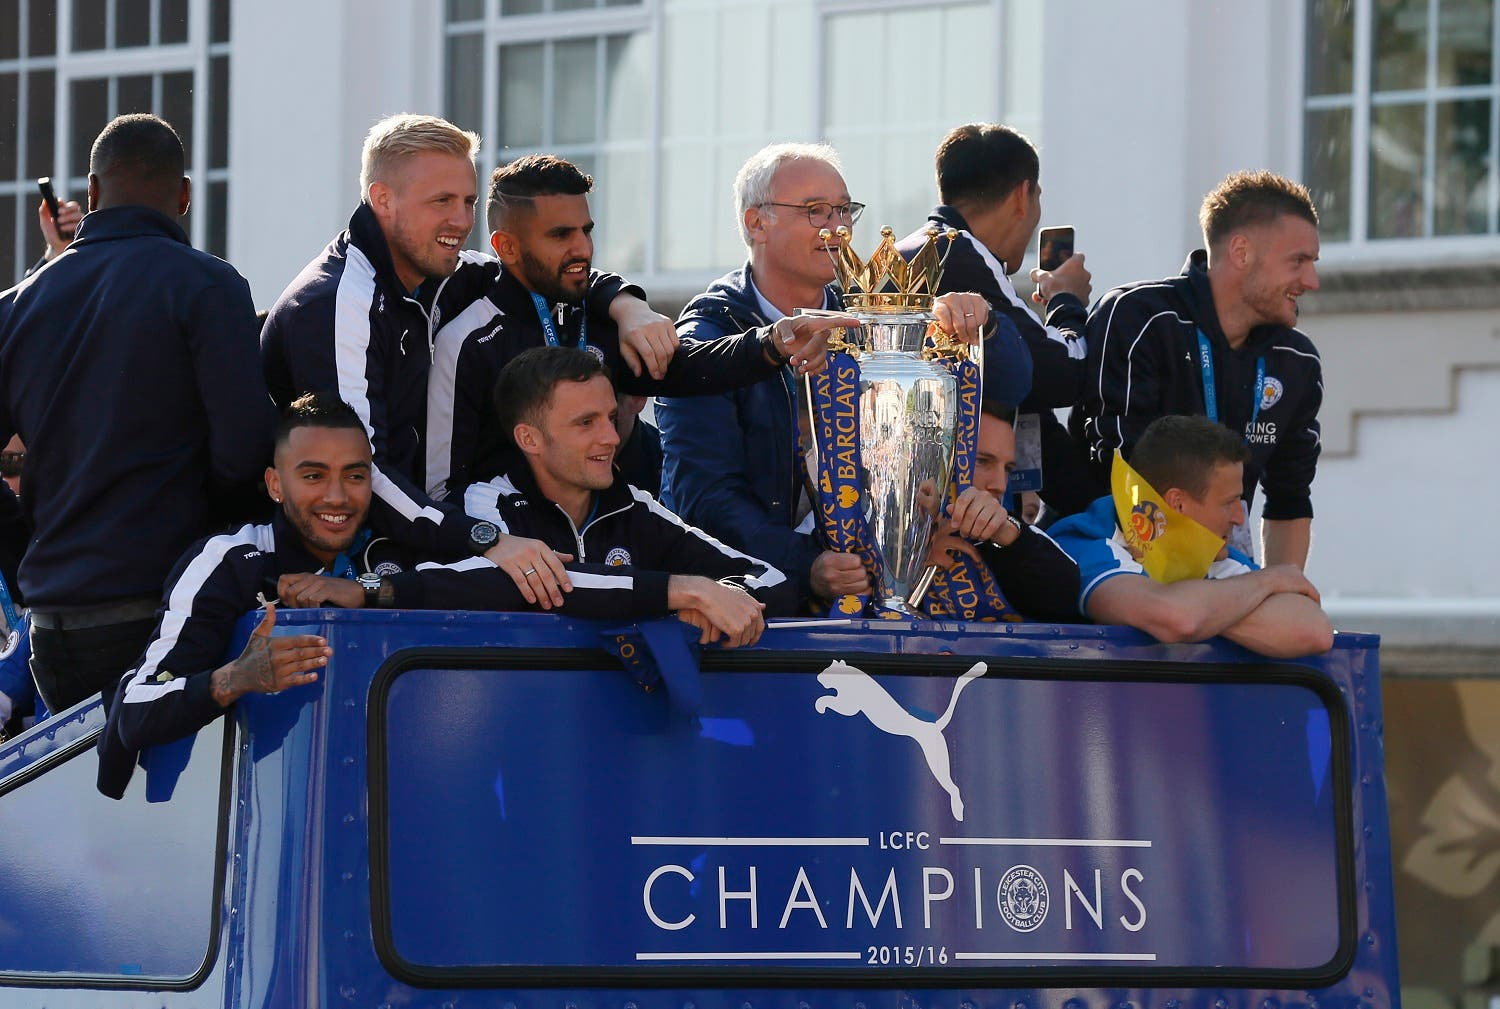 Leicester City manager Claudio Ranieri, Kasper Schmeichel, Riyad Mahrez, Andy King, Danny Simpson, Danny Drinkwater, Jamie Vardy and Robert Huth celebrate with Premier League trophy during the parade. (Action Images via Reuters)